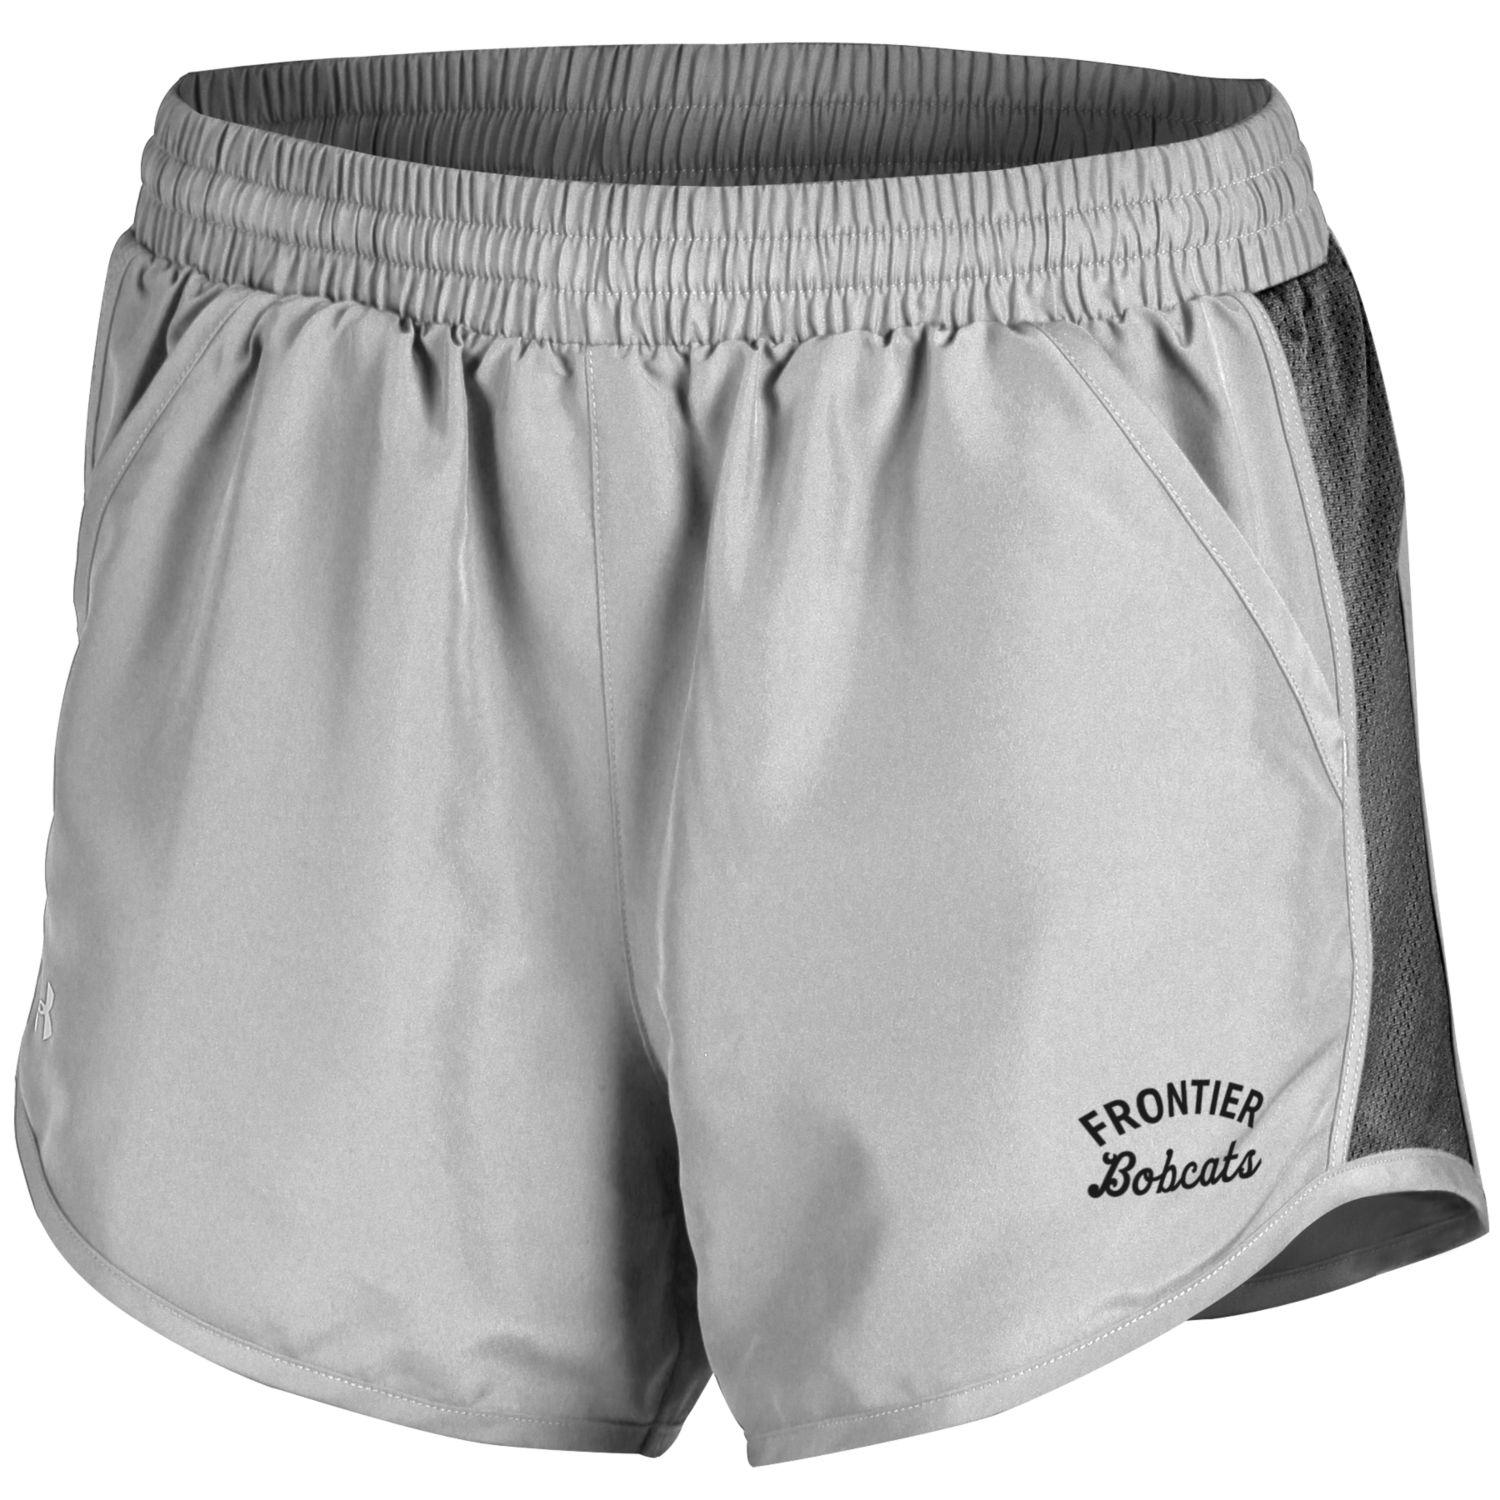 Image For WOMEN'S UNDER ARMOUR ATHLETIC SHORT